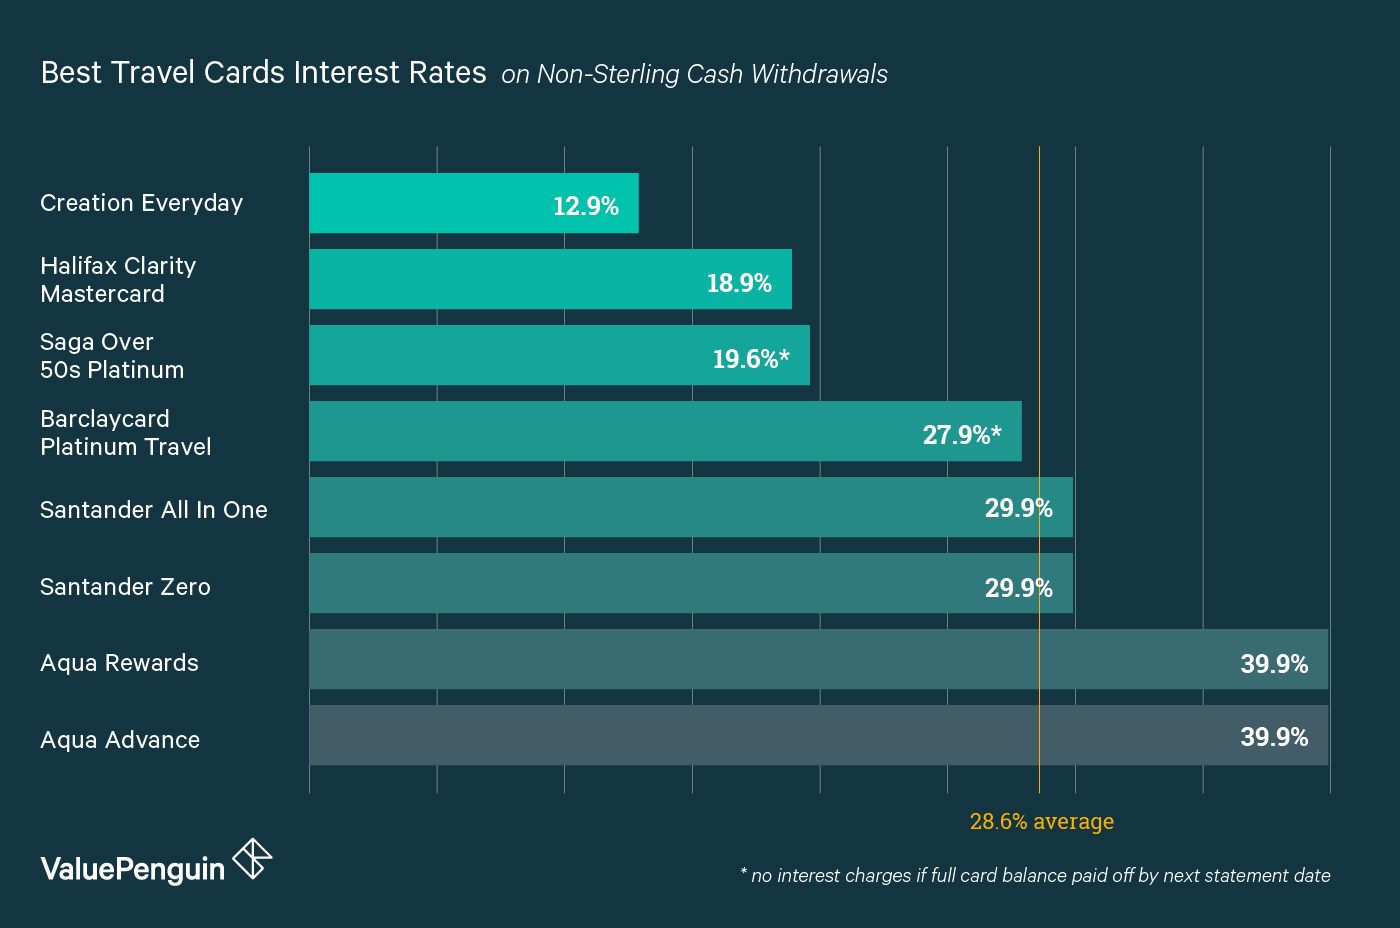 A chart comparing the interest rates on cash withdrawals for the best UK no-foreign-transaction-fee travel credit cards